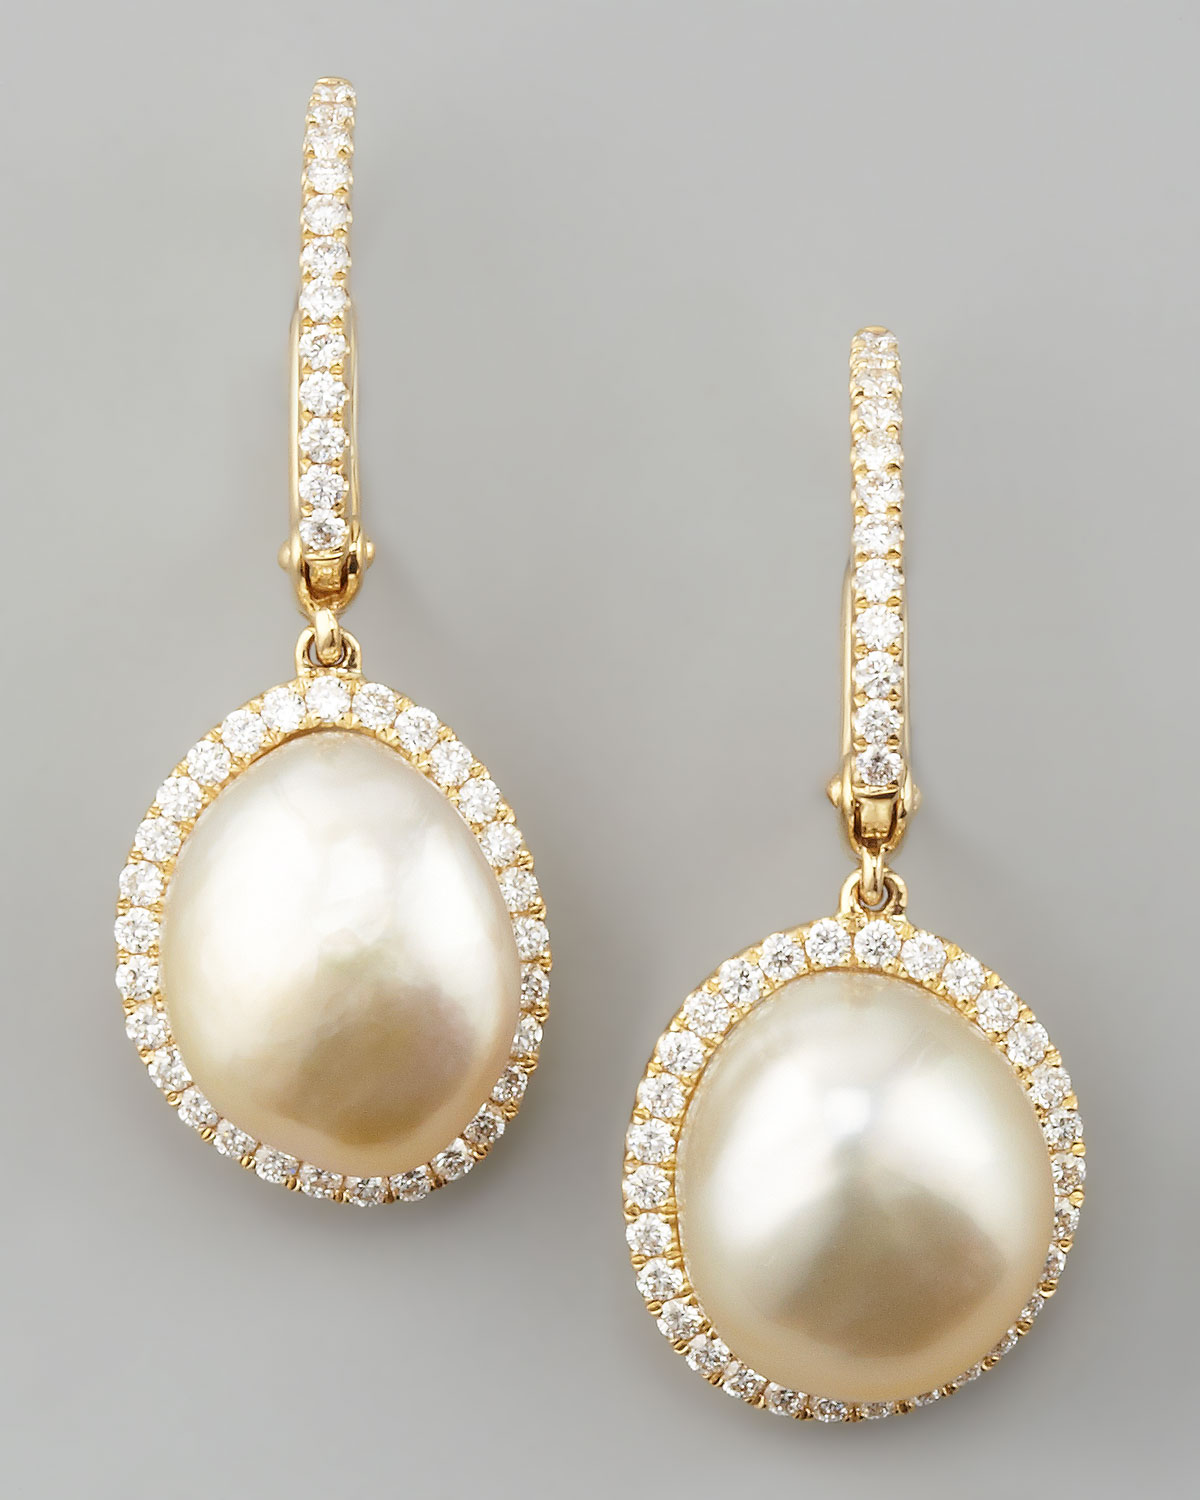 Property Brothers Apply Lyst Eli Jewels White South Sea Pearl Amp Diamond Framed